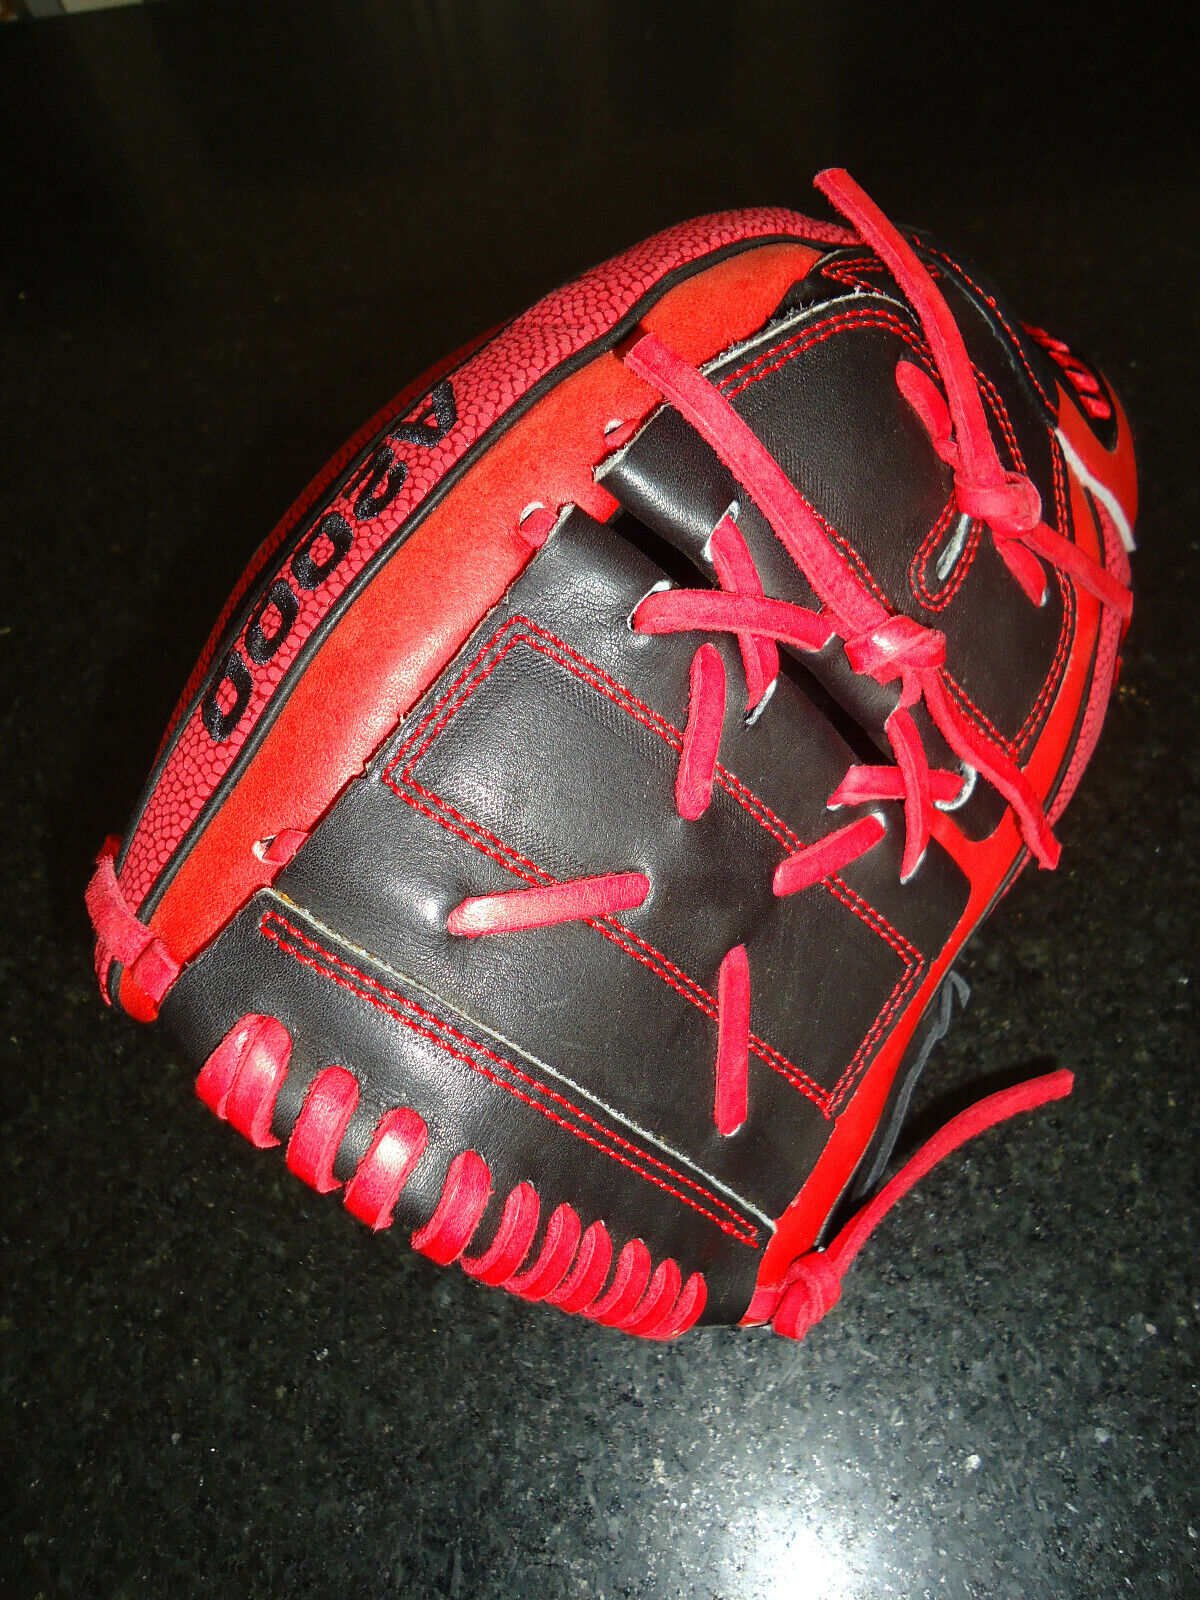 Wilson A2000 MA14 Grand Master Fastpitch Softball guante 12.25  LH -  259.99